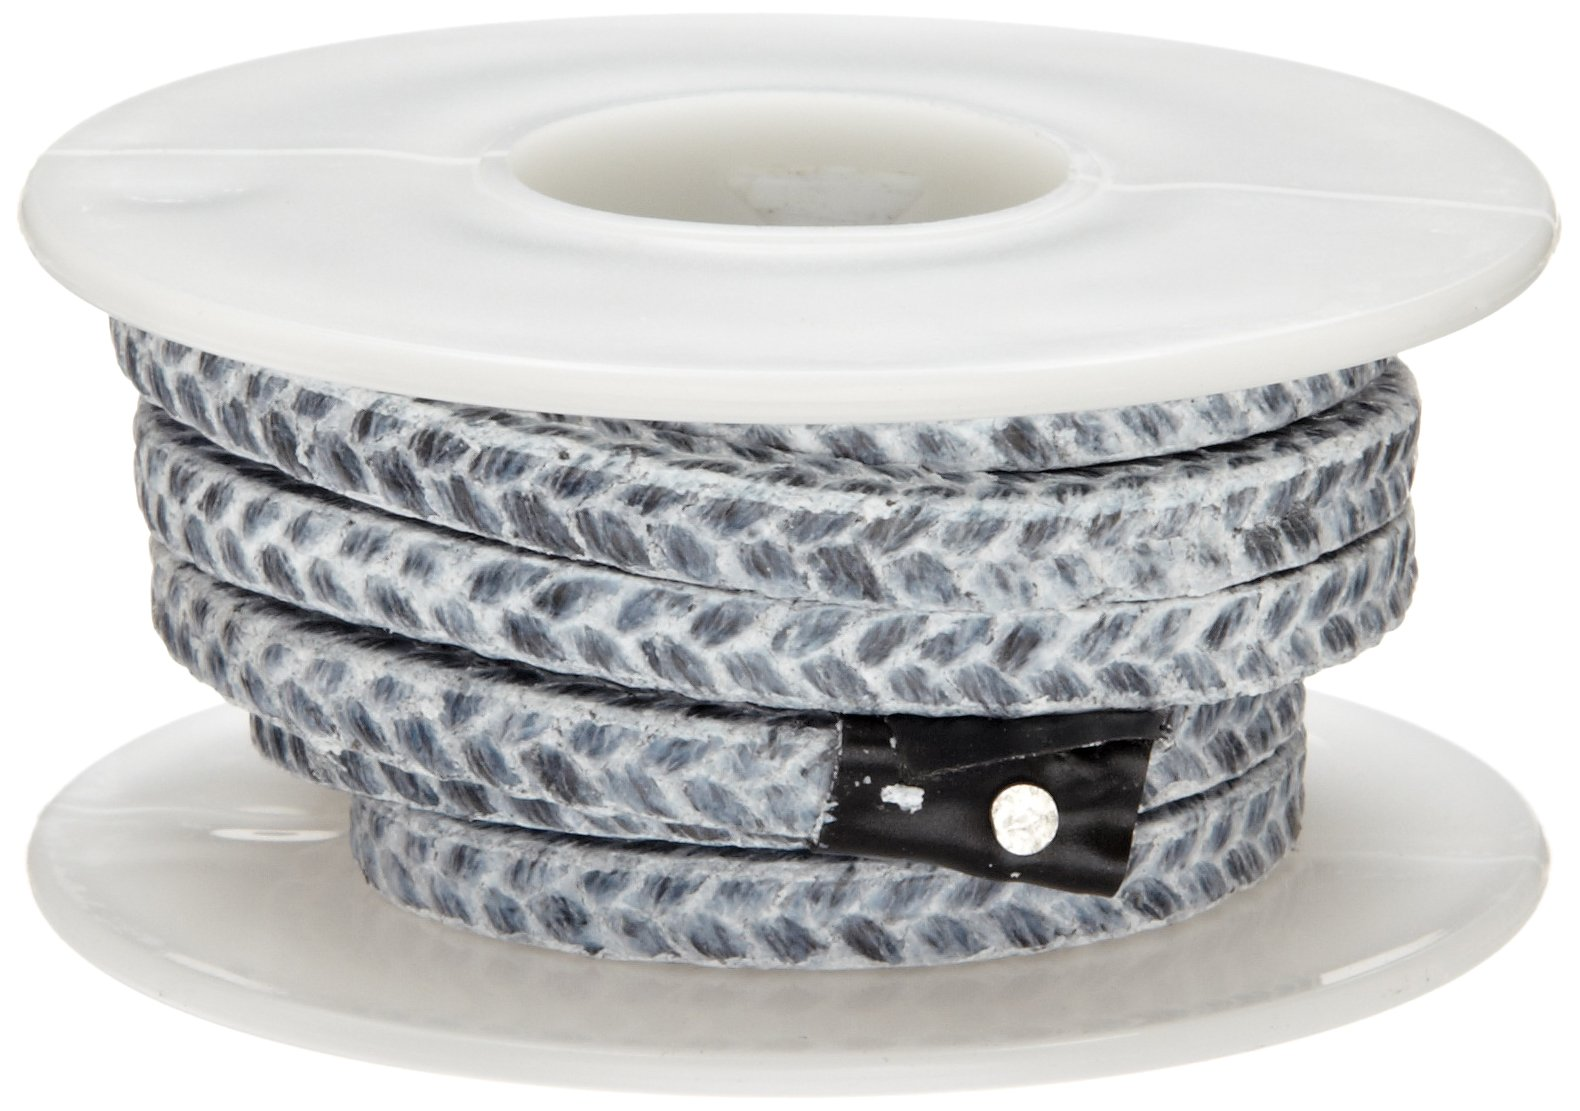 Palmetto 1588 Series Carbon with PTFE Coating Compression Packing Seal, Dull Gray, 7/16'' Square, 5' Length